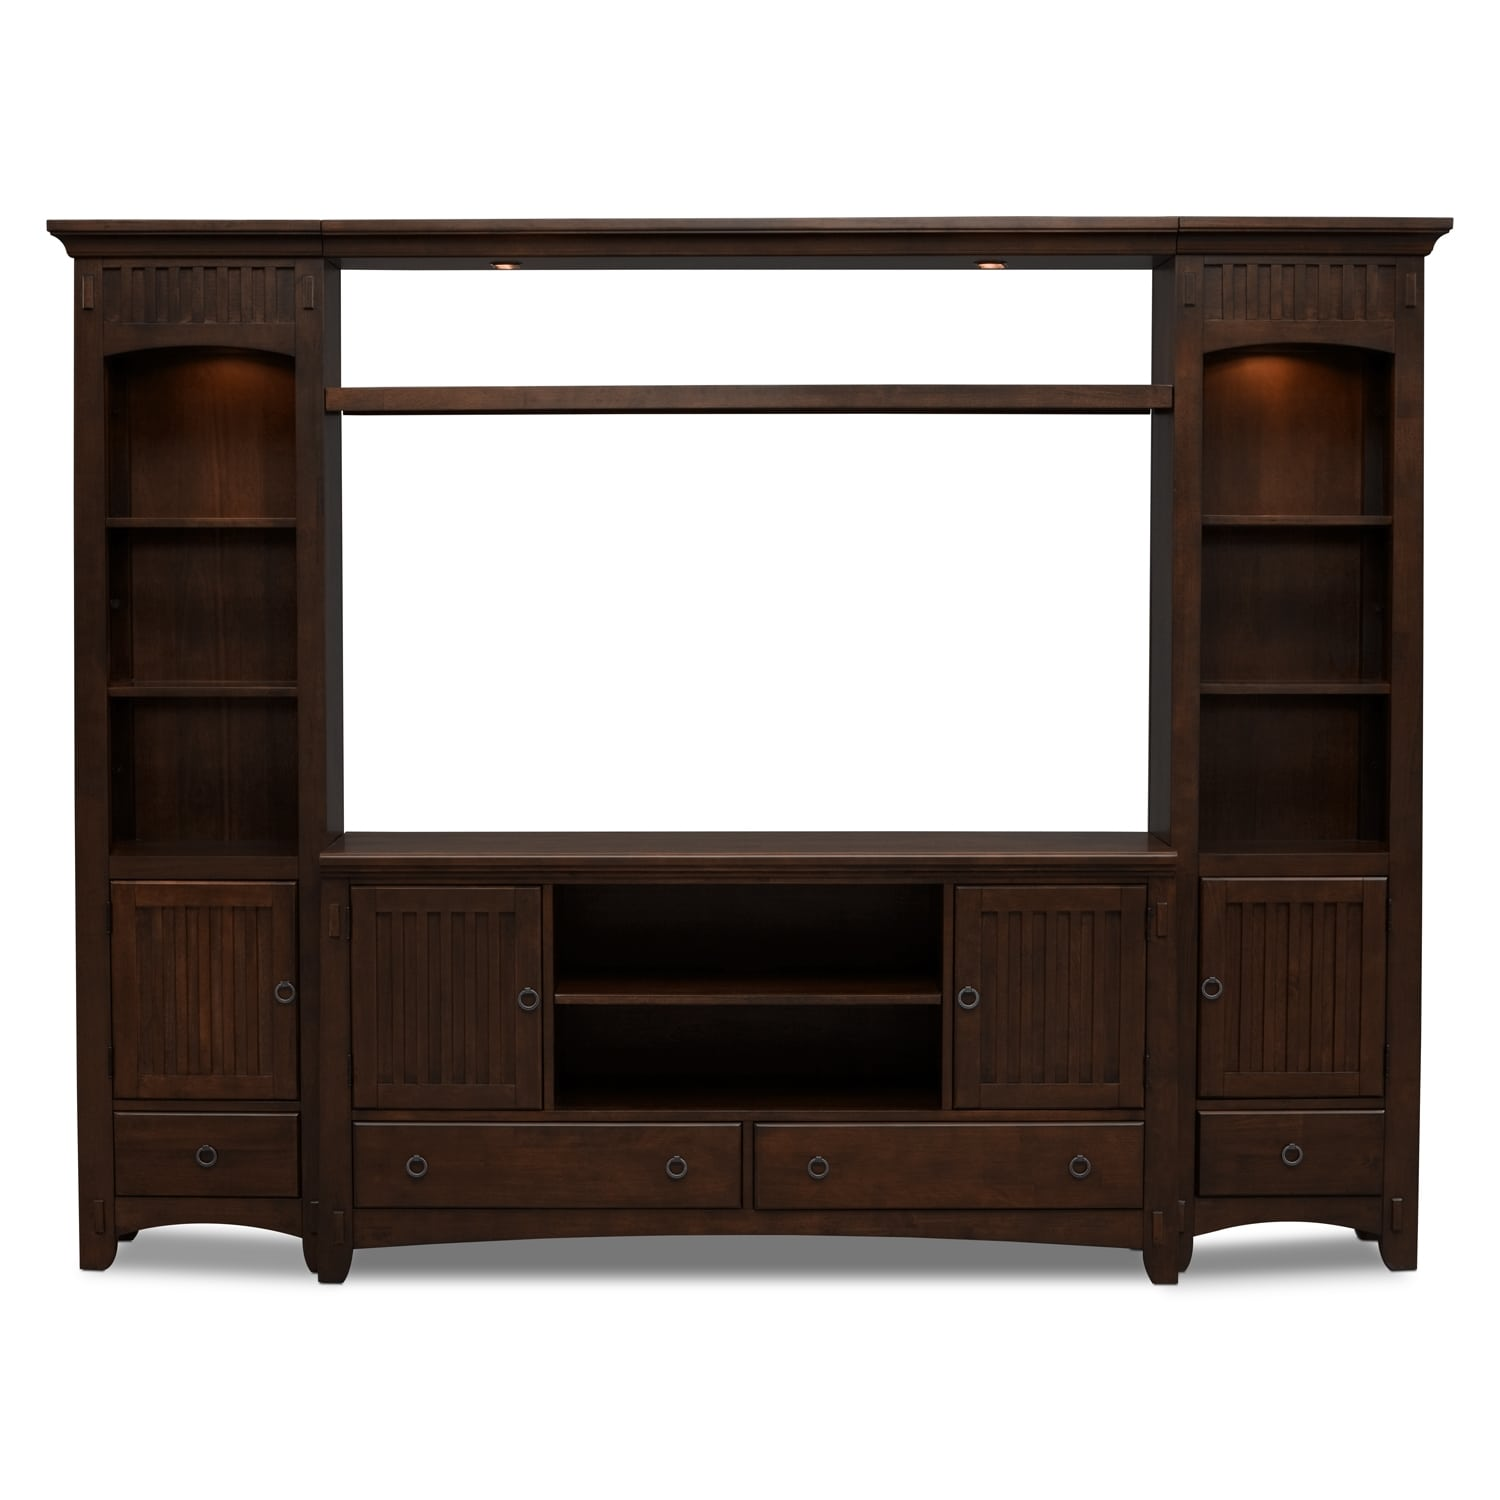 Fullsize Of Entertainment Center Wall Unit